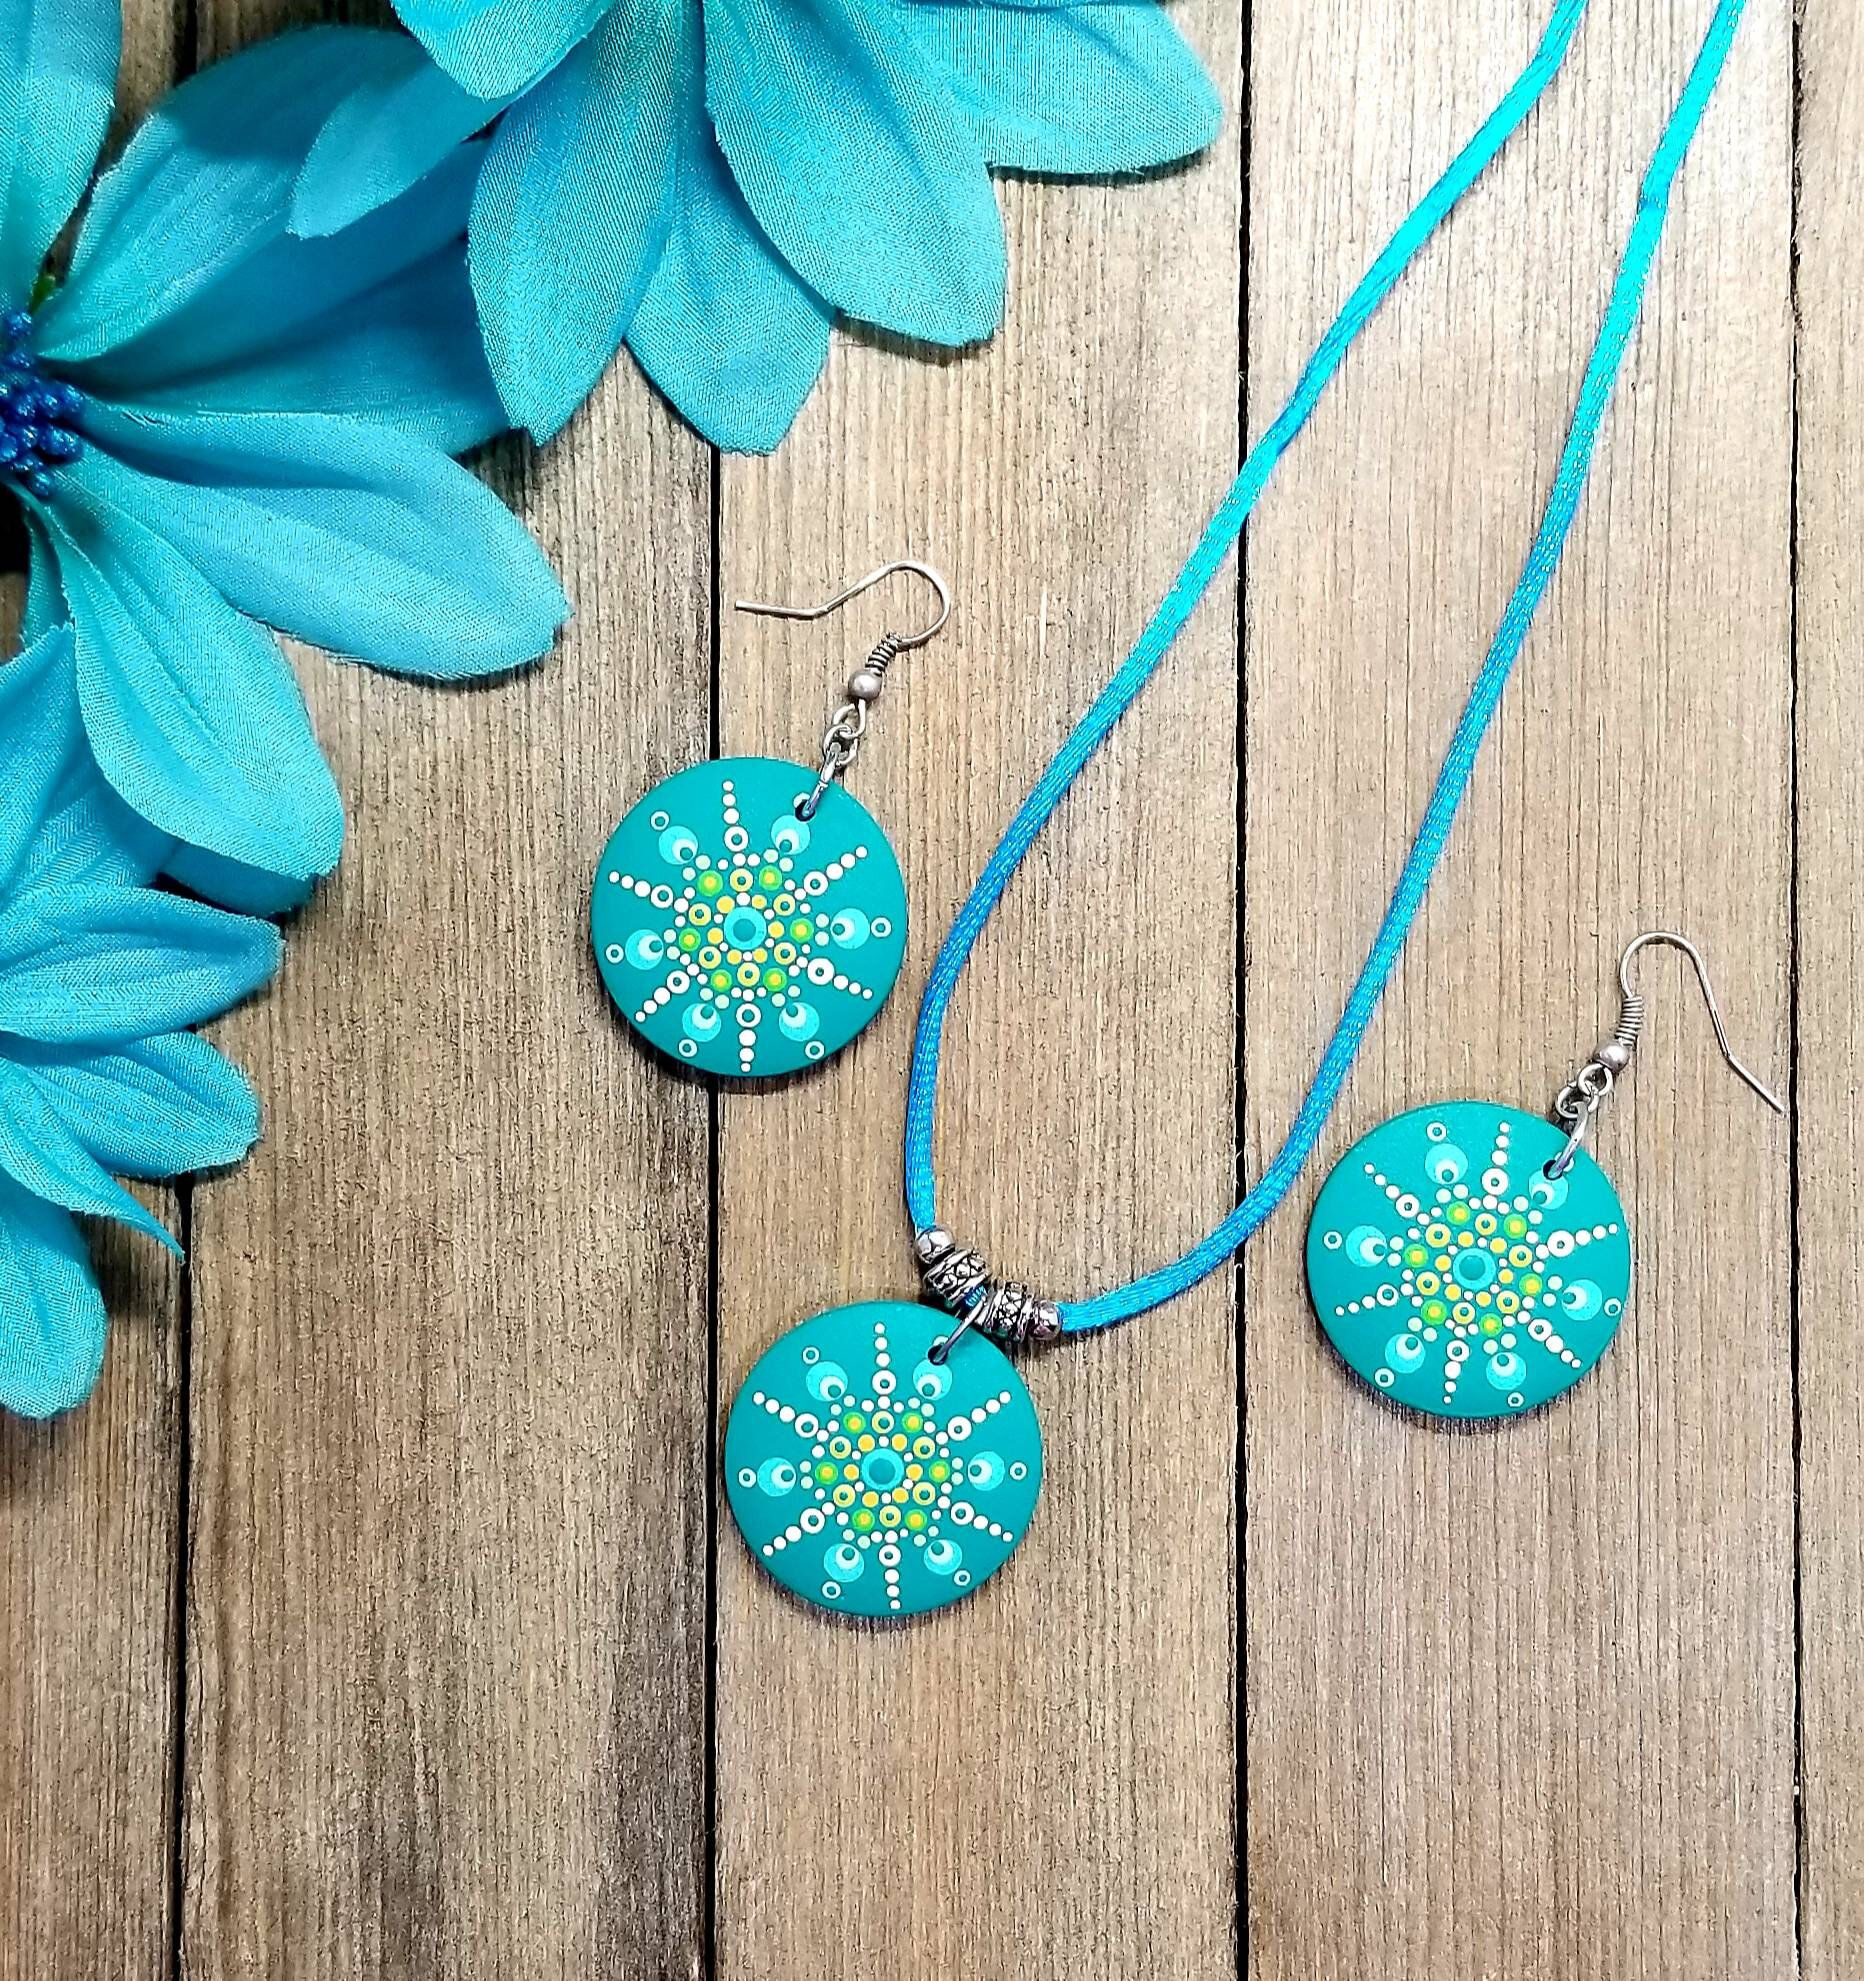 Necklace Earring Set Hand Painted Mandala Dots Teal Blue Etsy Mandala Jewelry Polymer Clay Jewelry Tutorials Jewelry Making Patterns